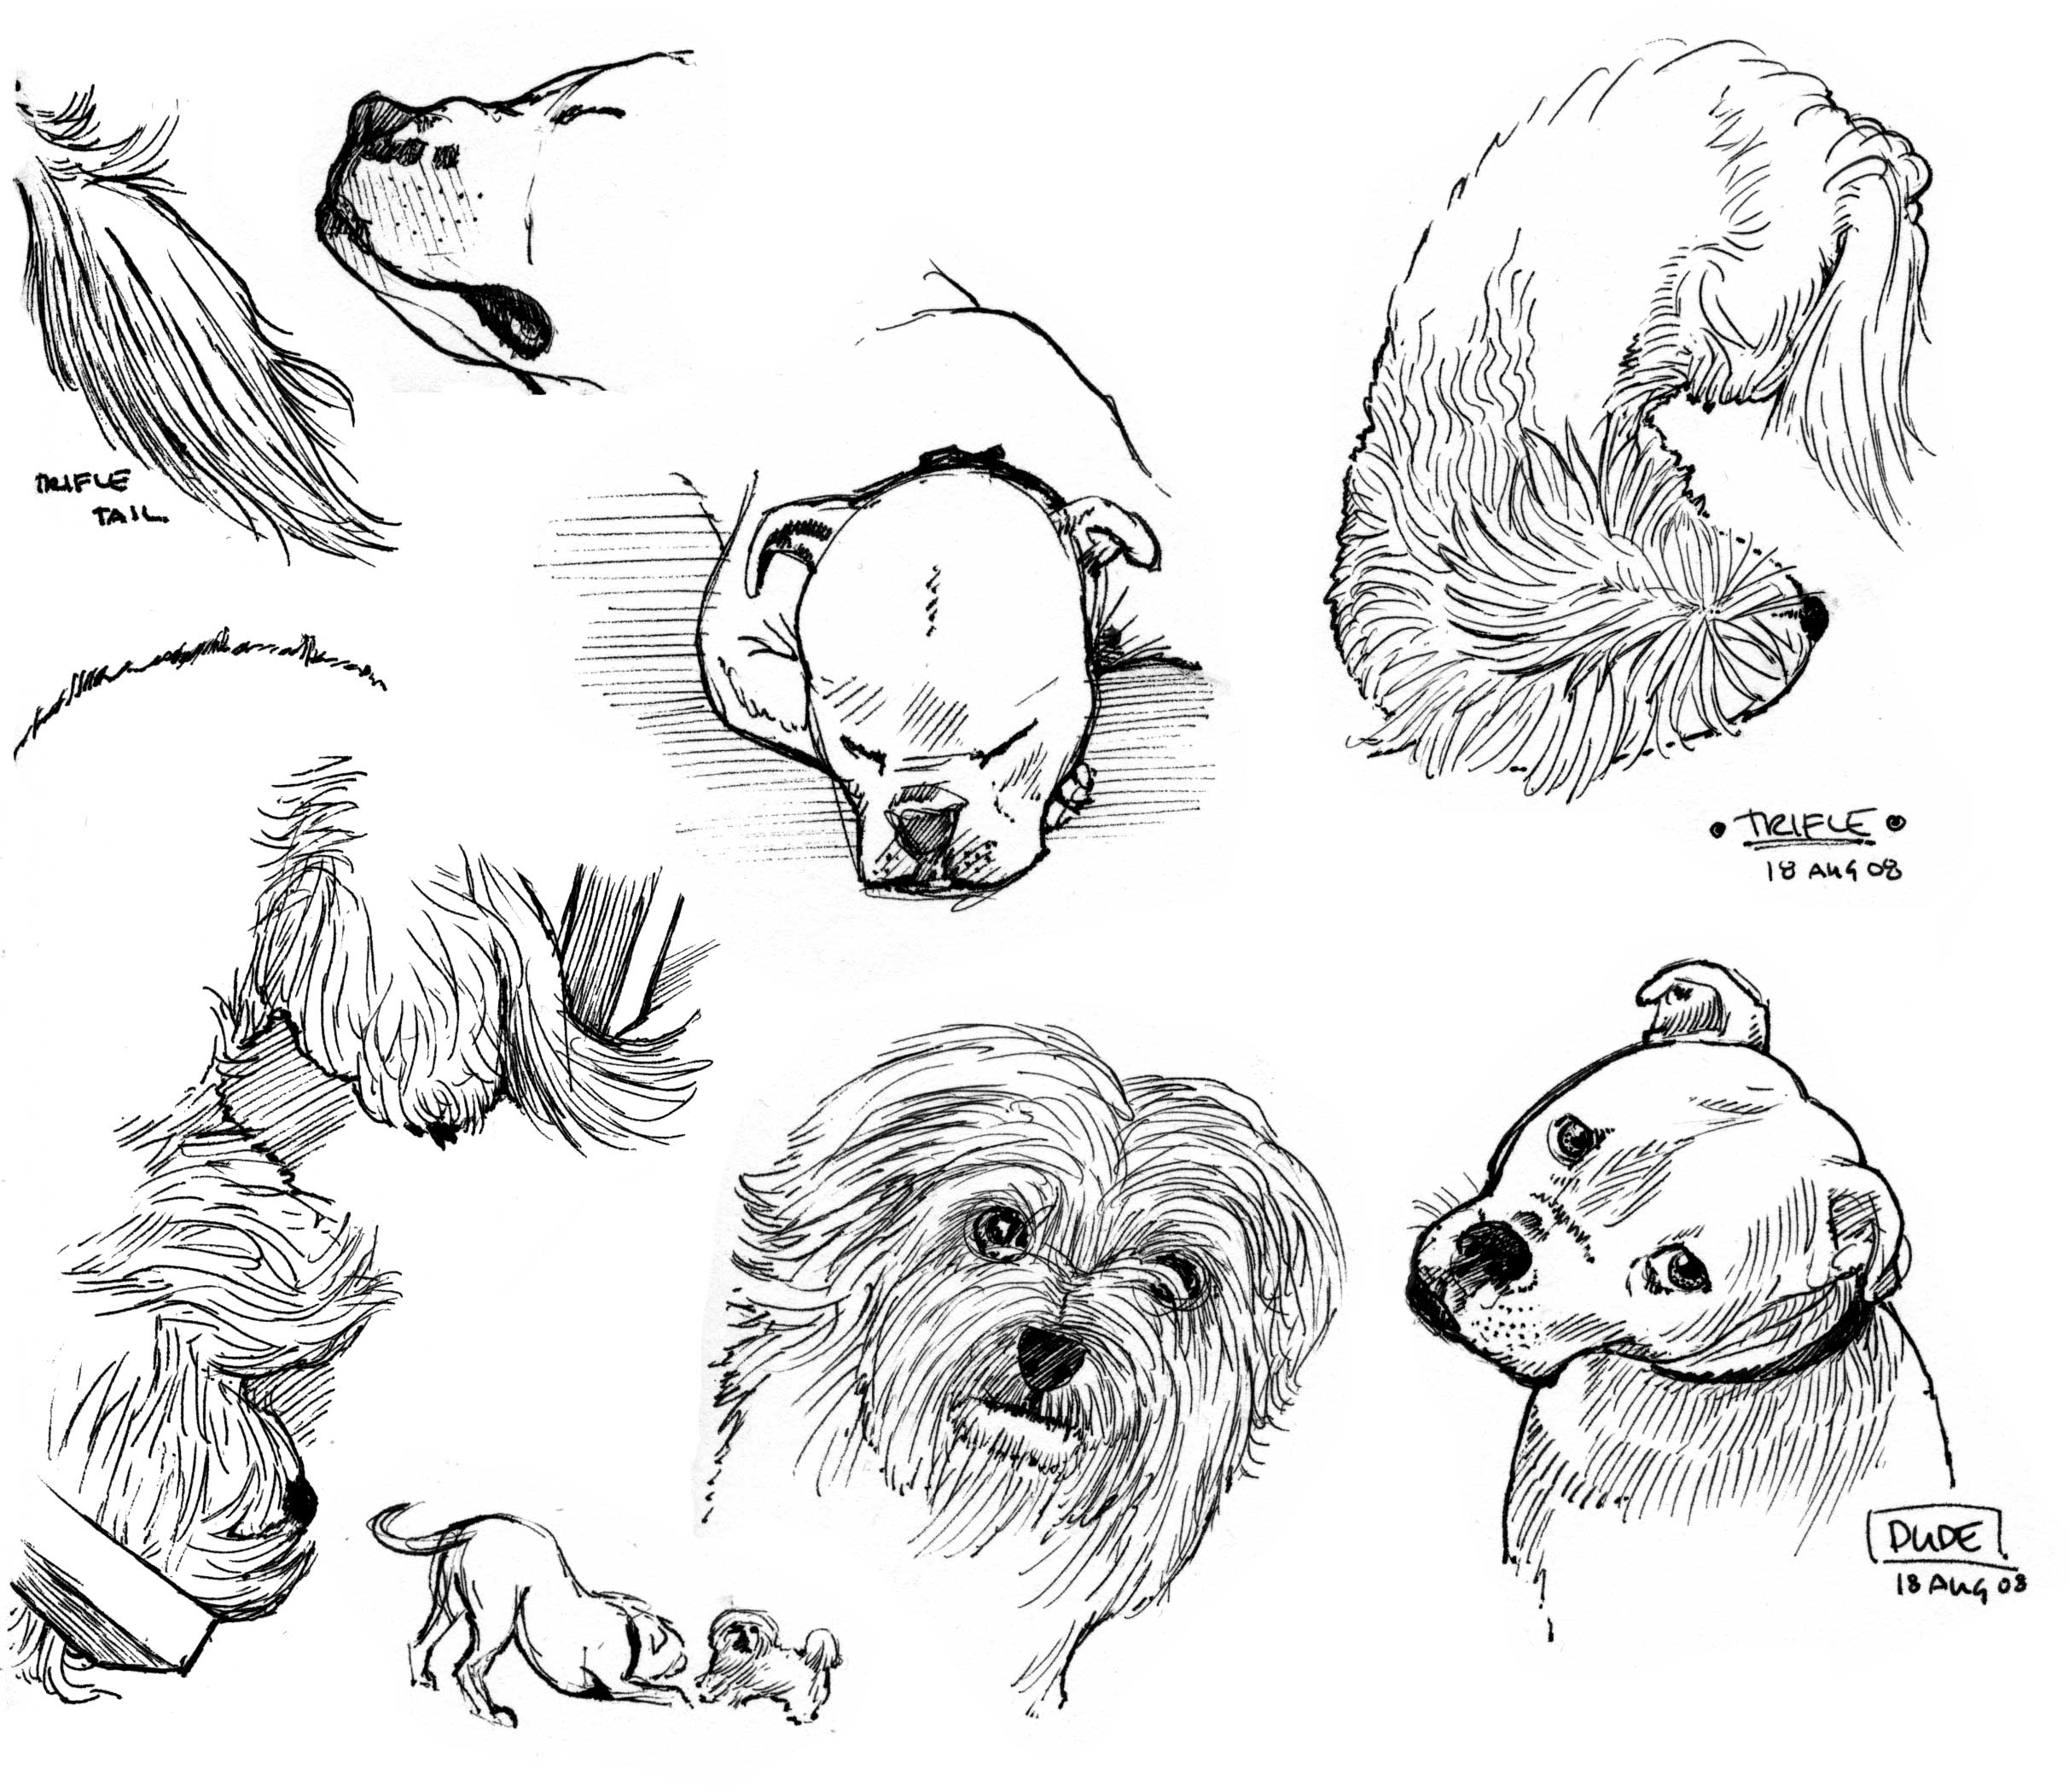 jeff_heath_dogs(ink).jpg